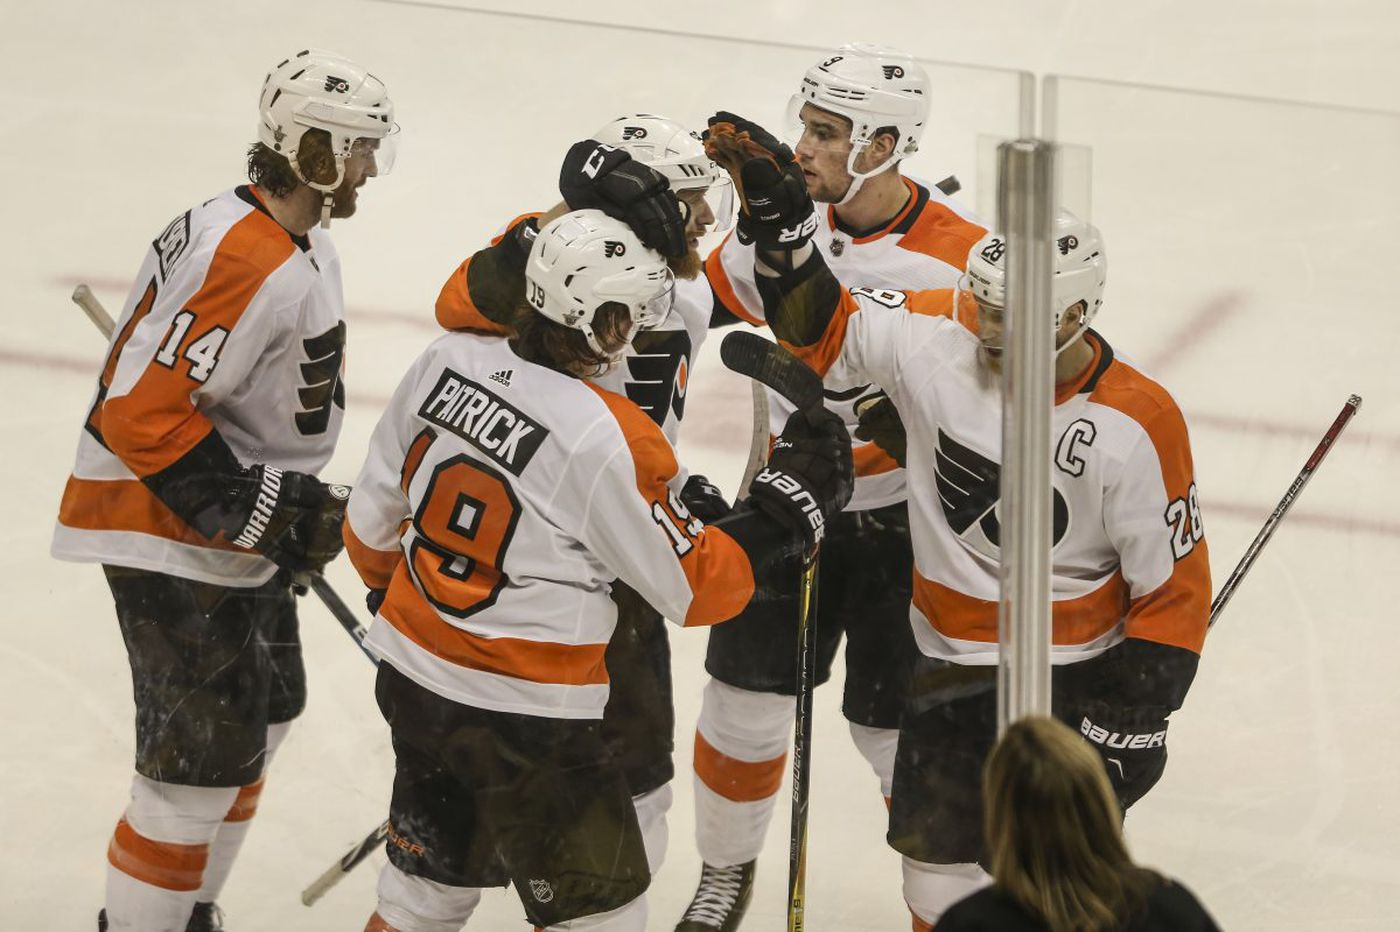 Despite early NHL playoffs exit, Flyers' future looks bright